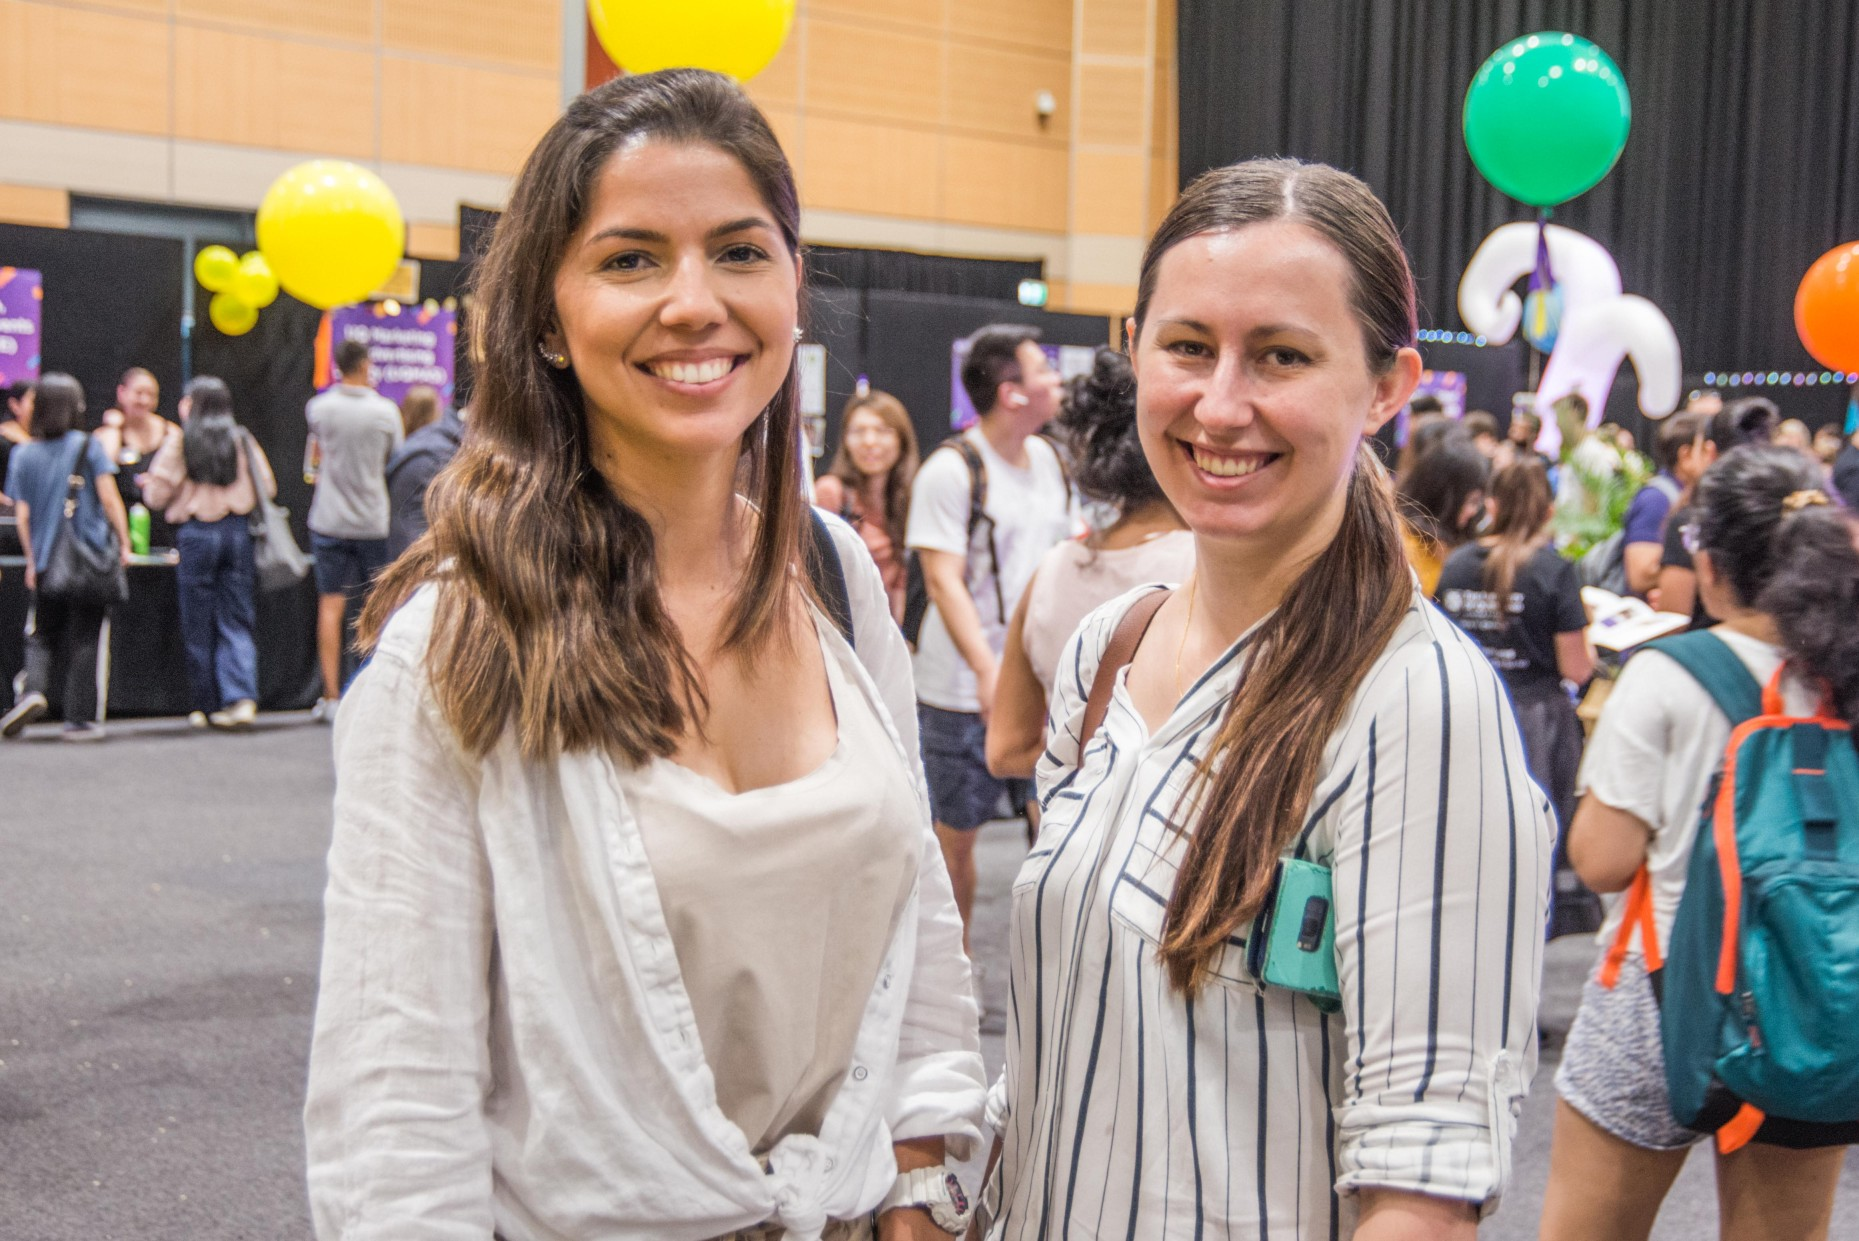 Postgraduate students Larissa Cruz and Tamika Stasiuk